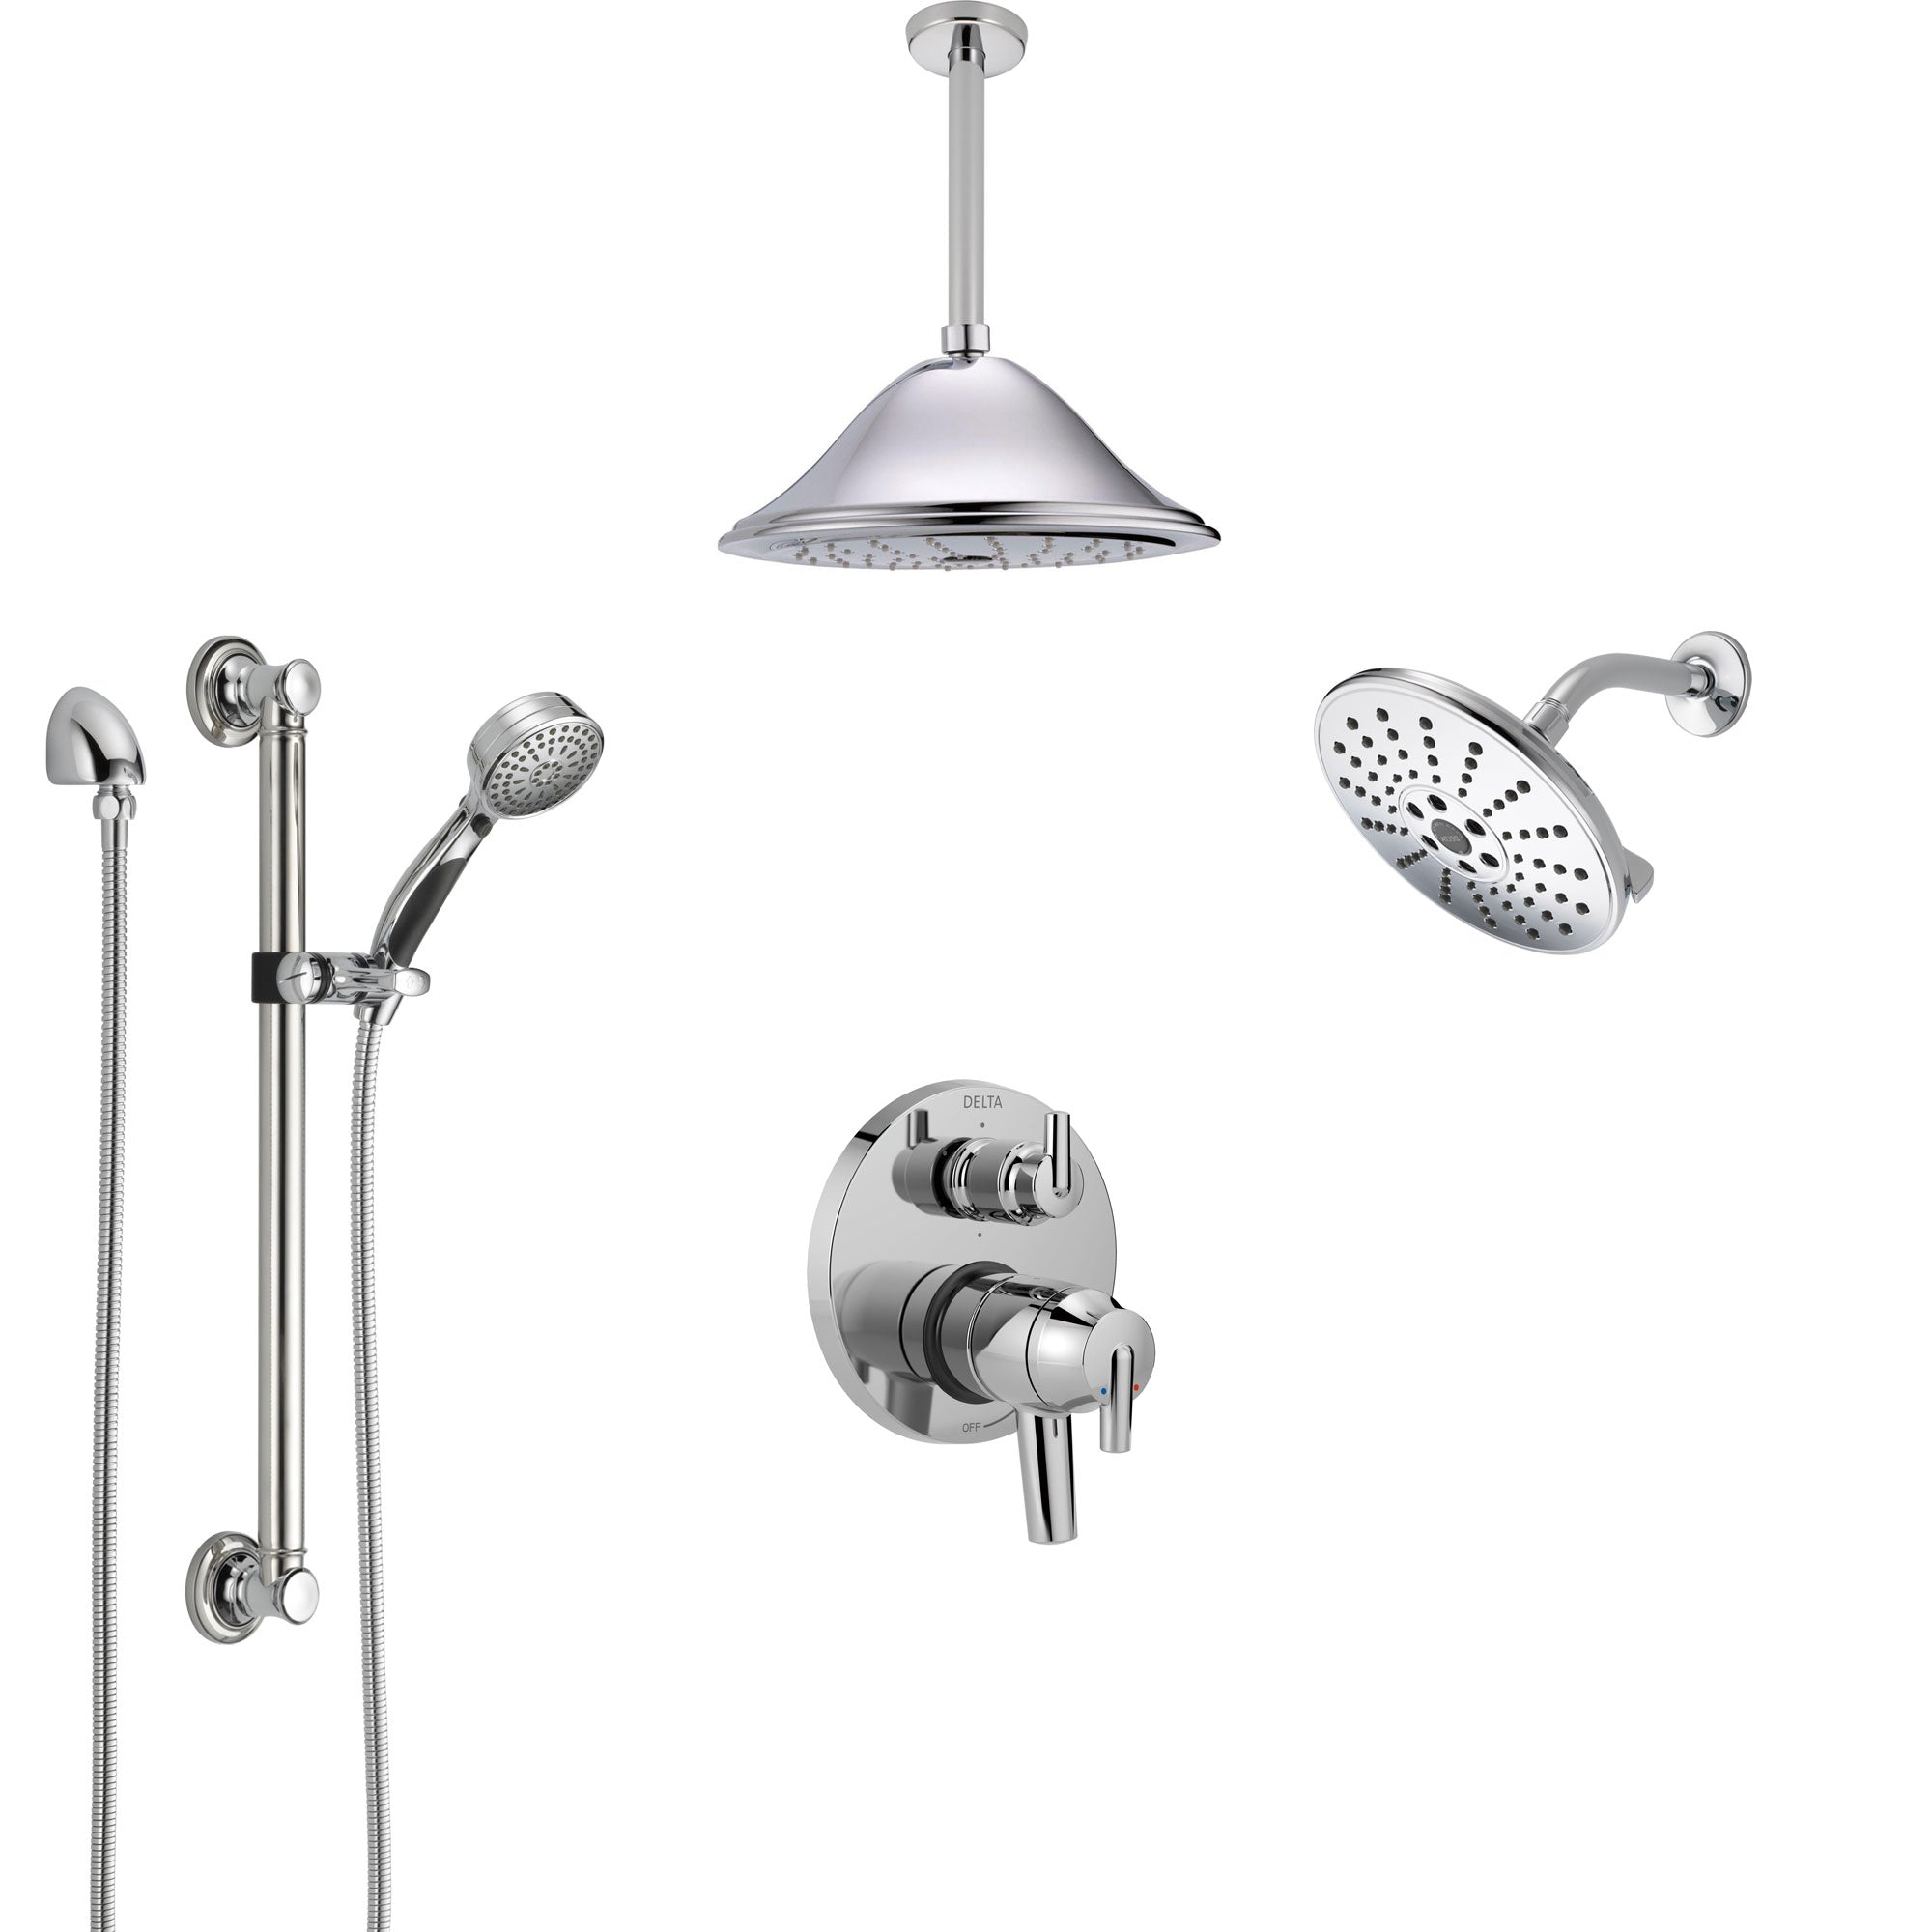 Delta Trinsic Chrome Shower System with Dual Control Handle, Integrated Diverter, Showerhead, Ceiling Showerhead, and Grab Bar Hand Shower SS2795912